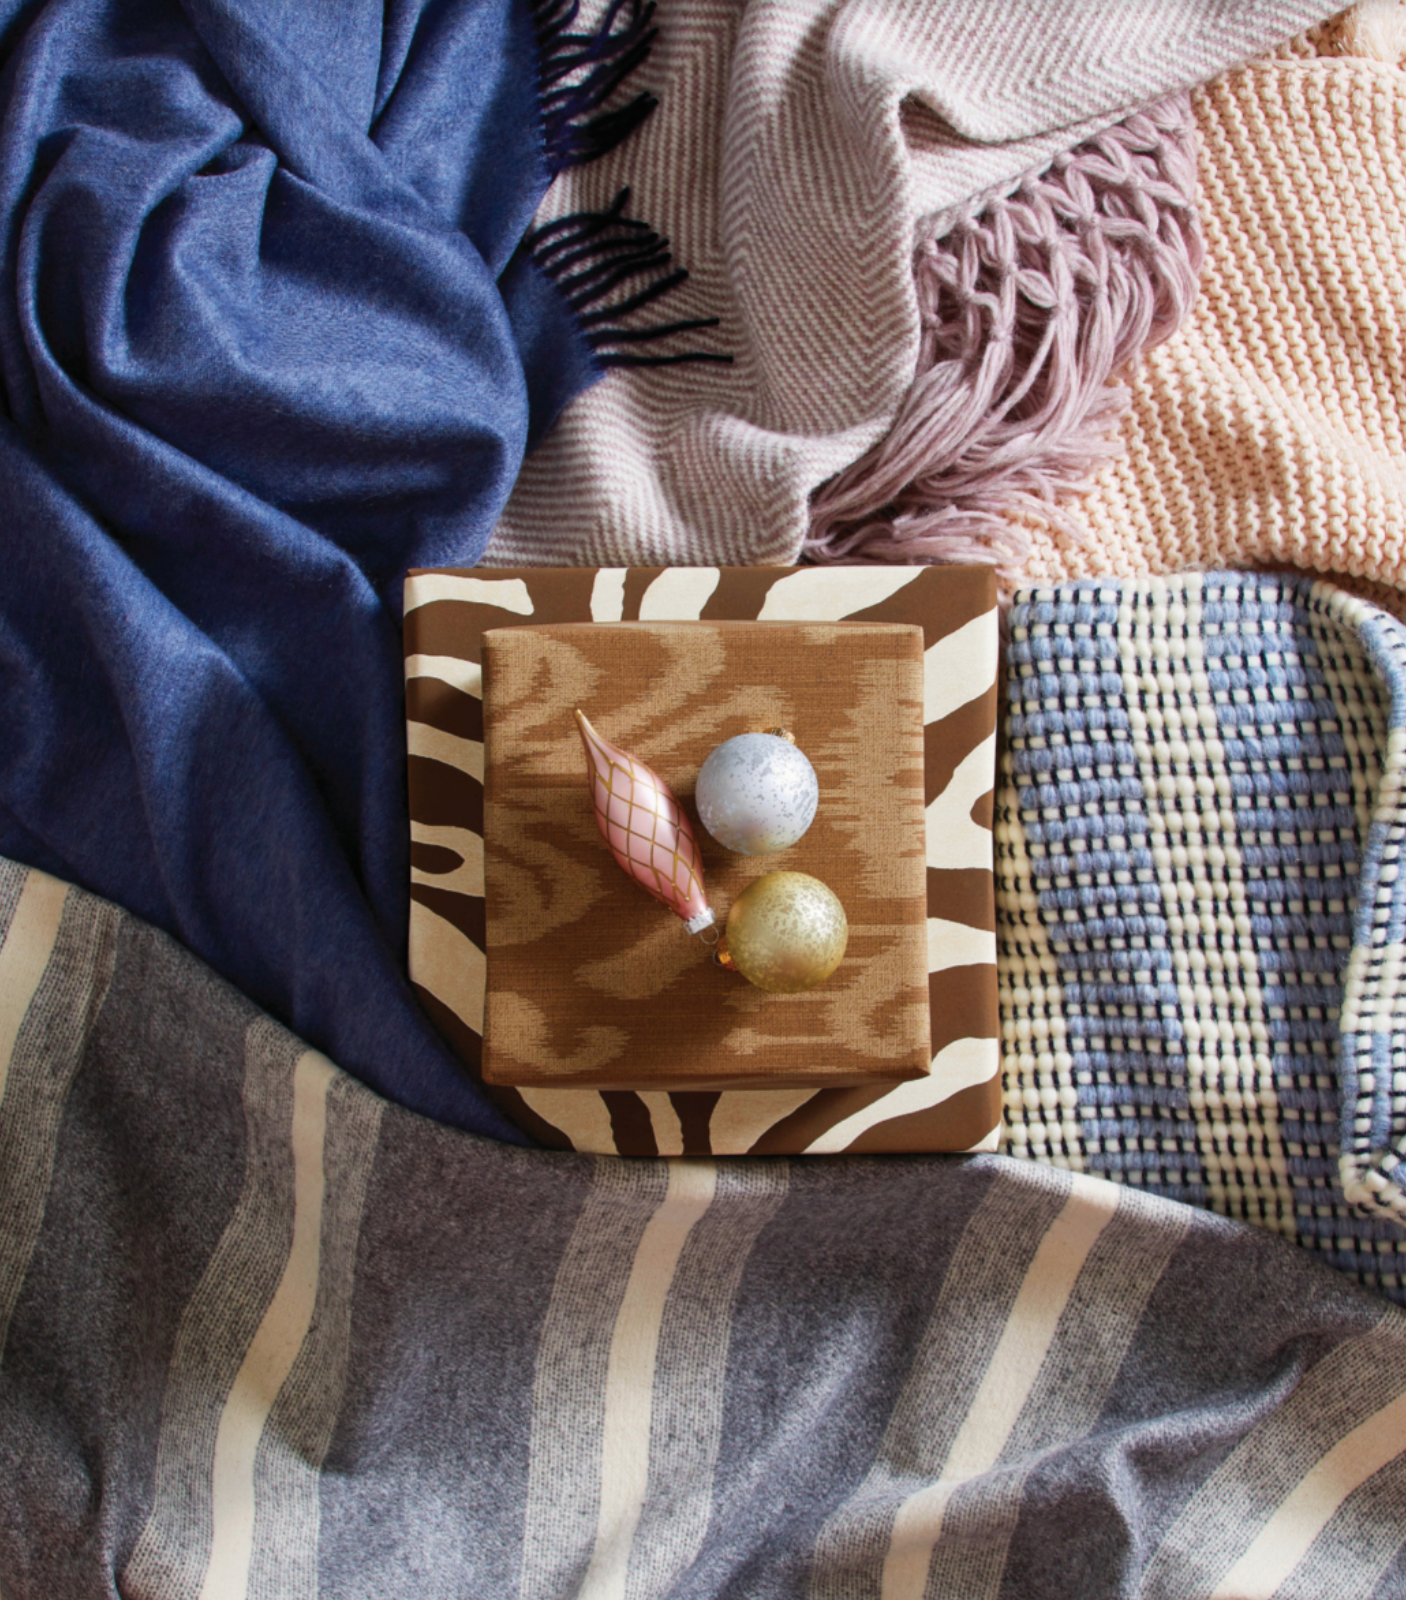 colored fabric draped around a box with three ornaments laying on it